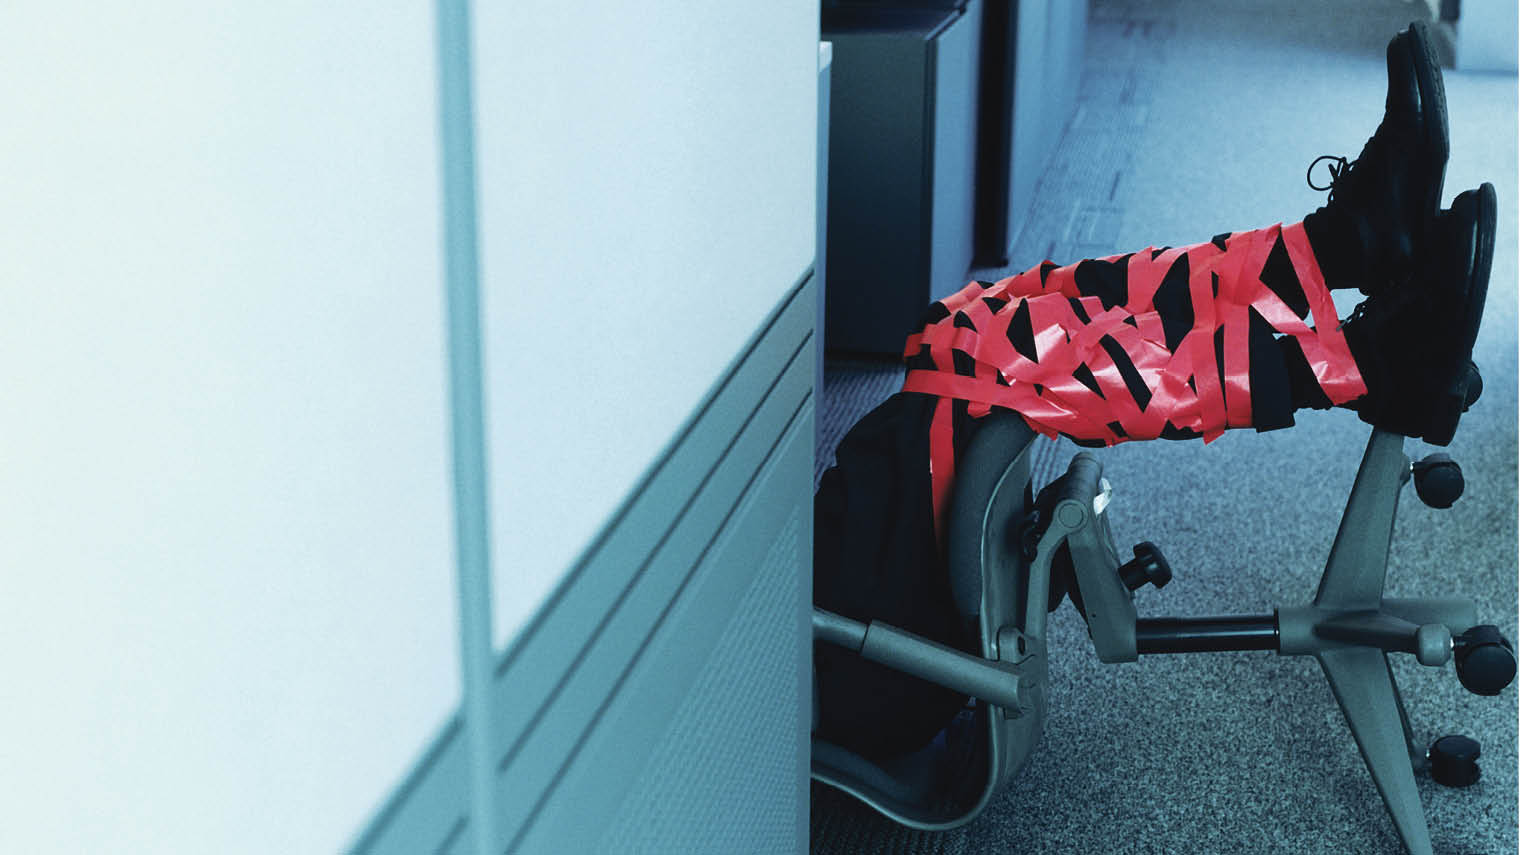 Bureaucracy is holding business back: how to cut the red tape